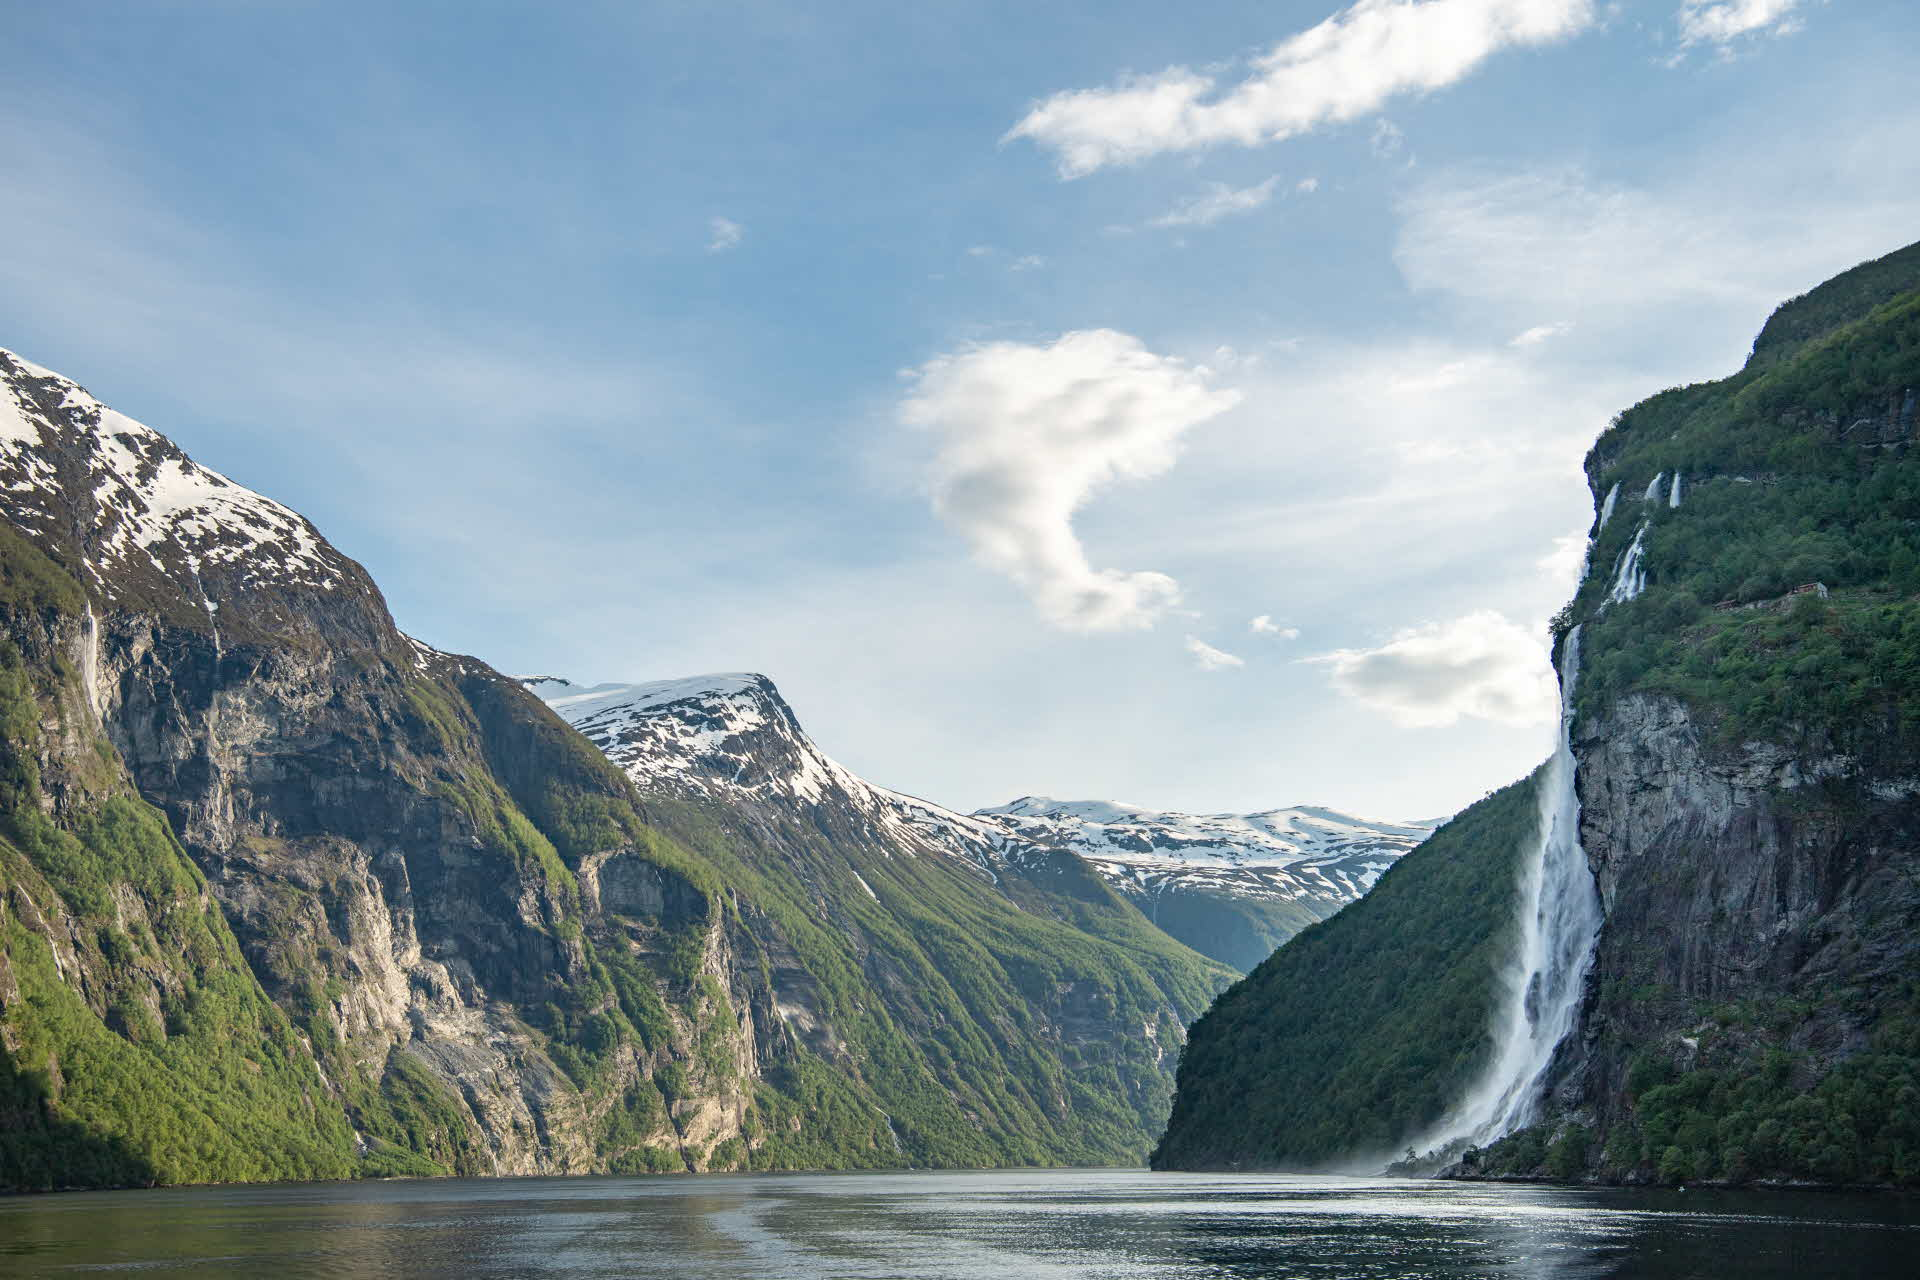 A spring day at the Geirangerfjord, with snow on the mountains and a large waterfall